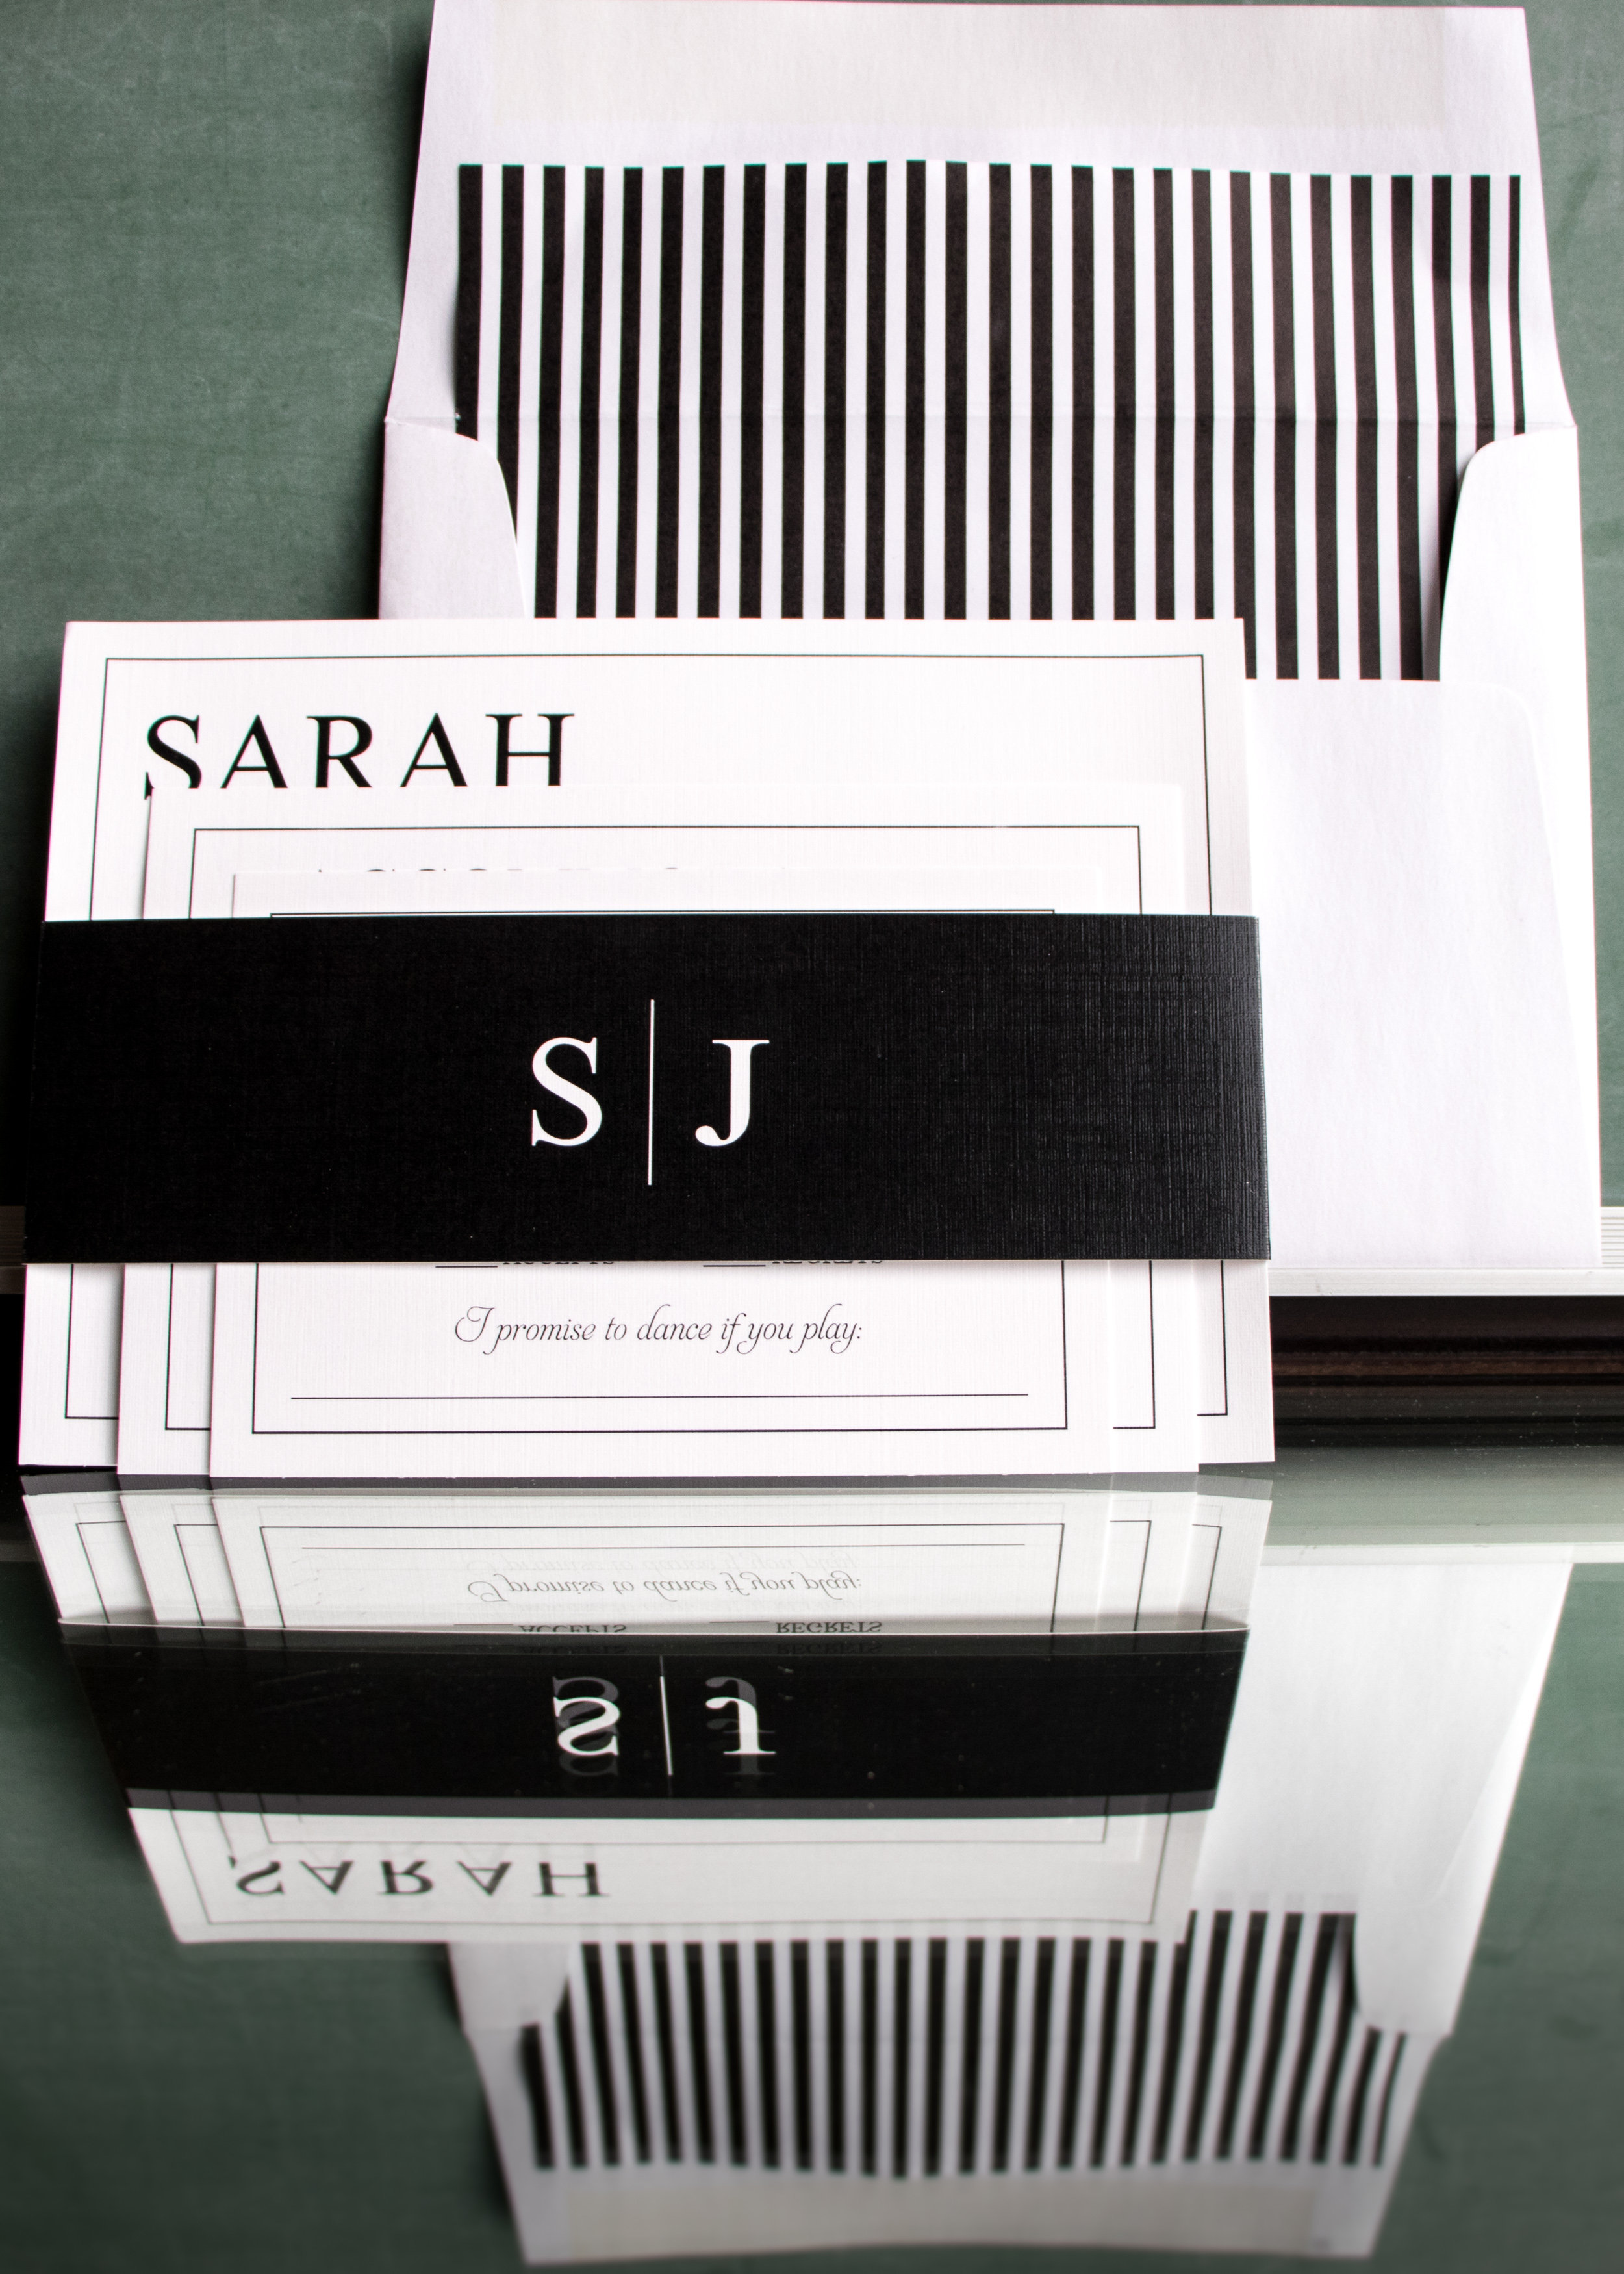 This is the invitation I received so many compliments on this past weekend - a Kate Spade inspired design - hence the thin black and white stripes!